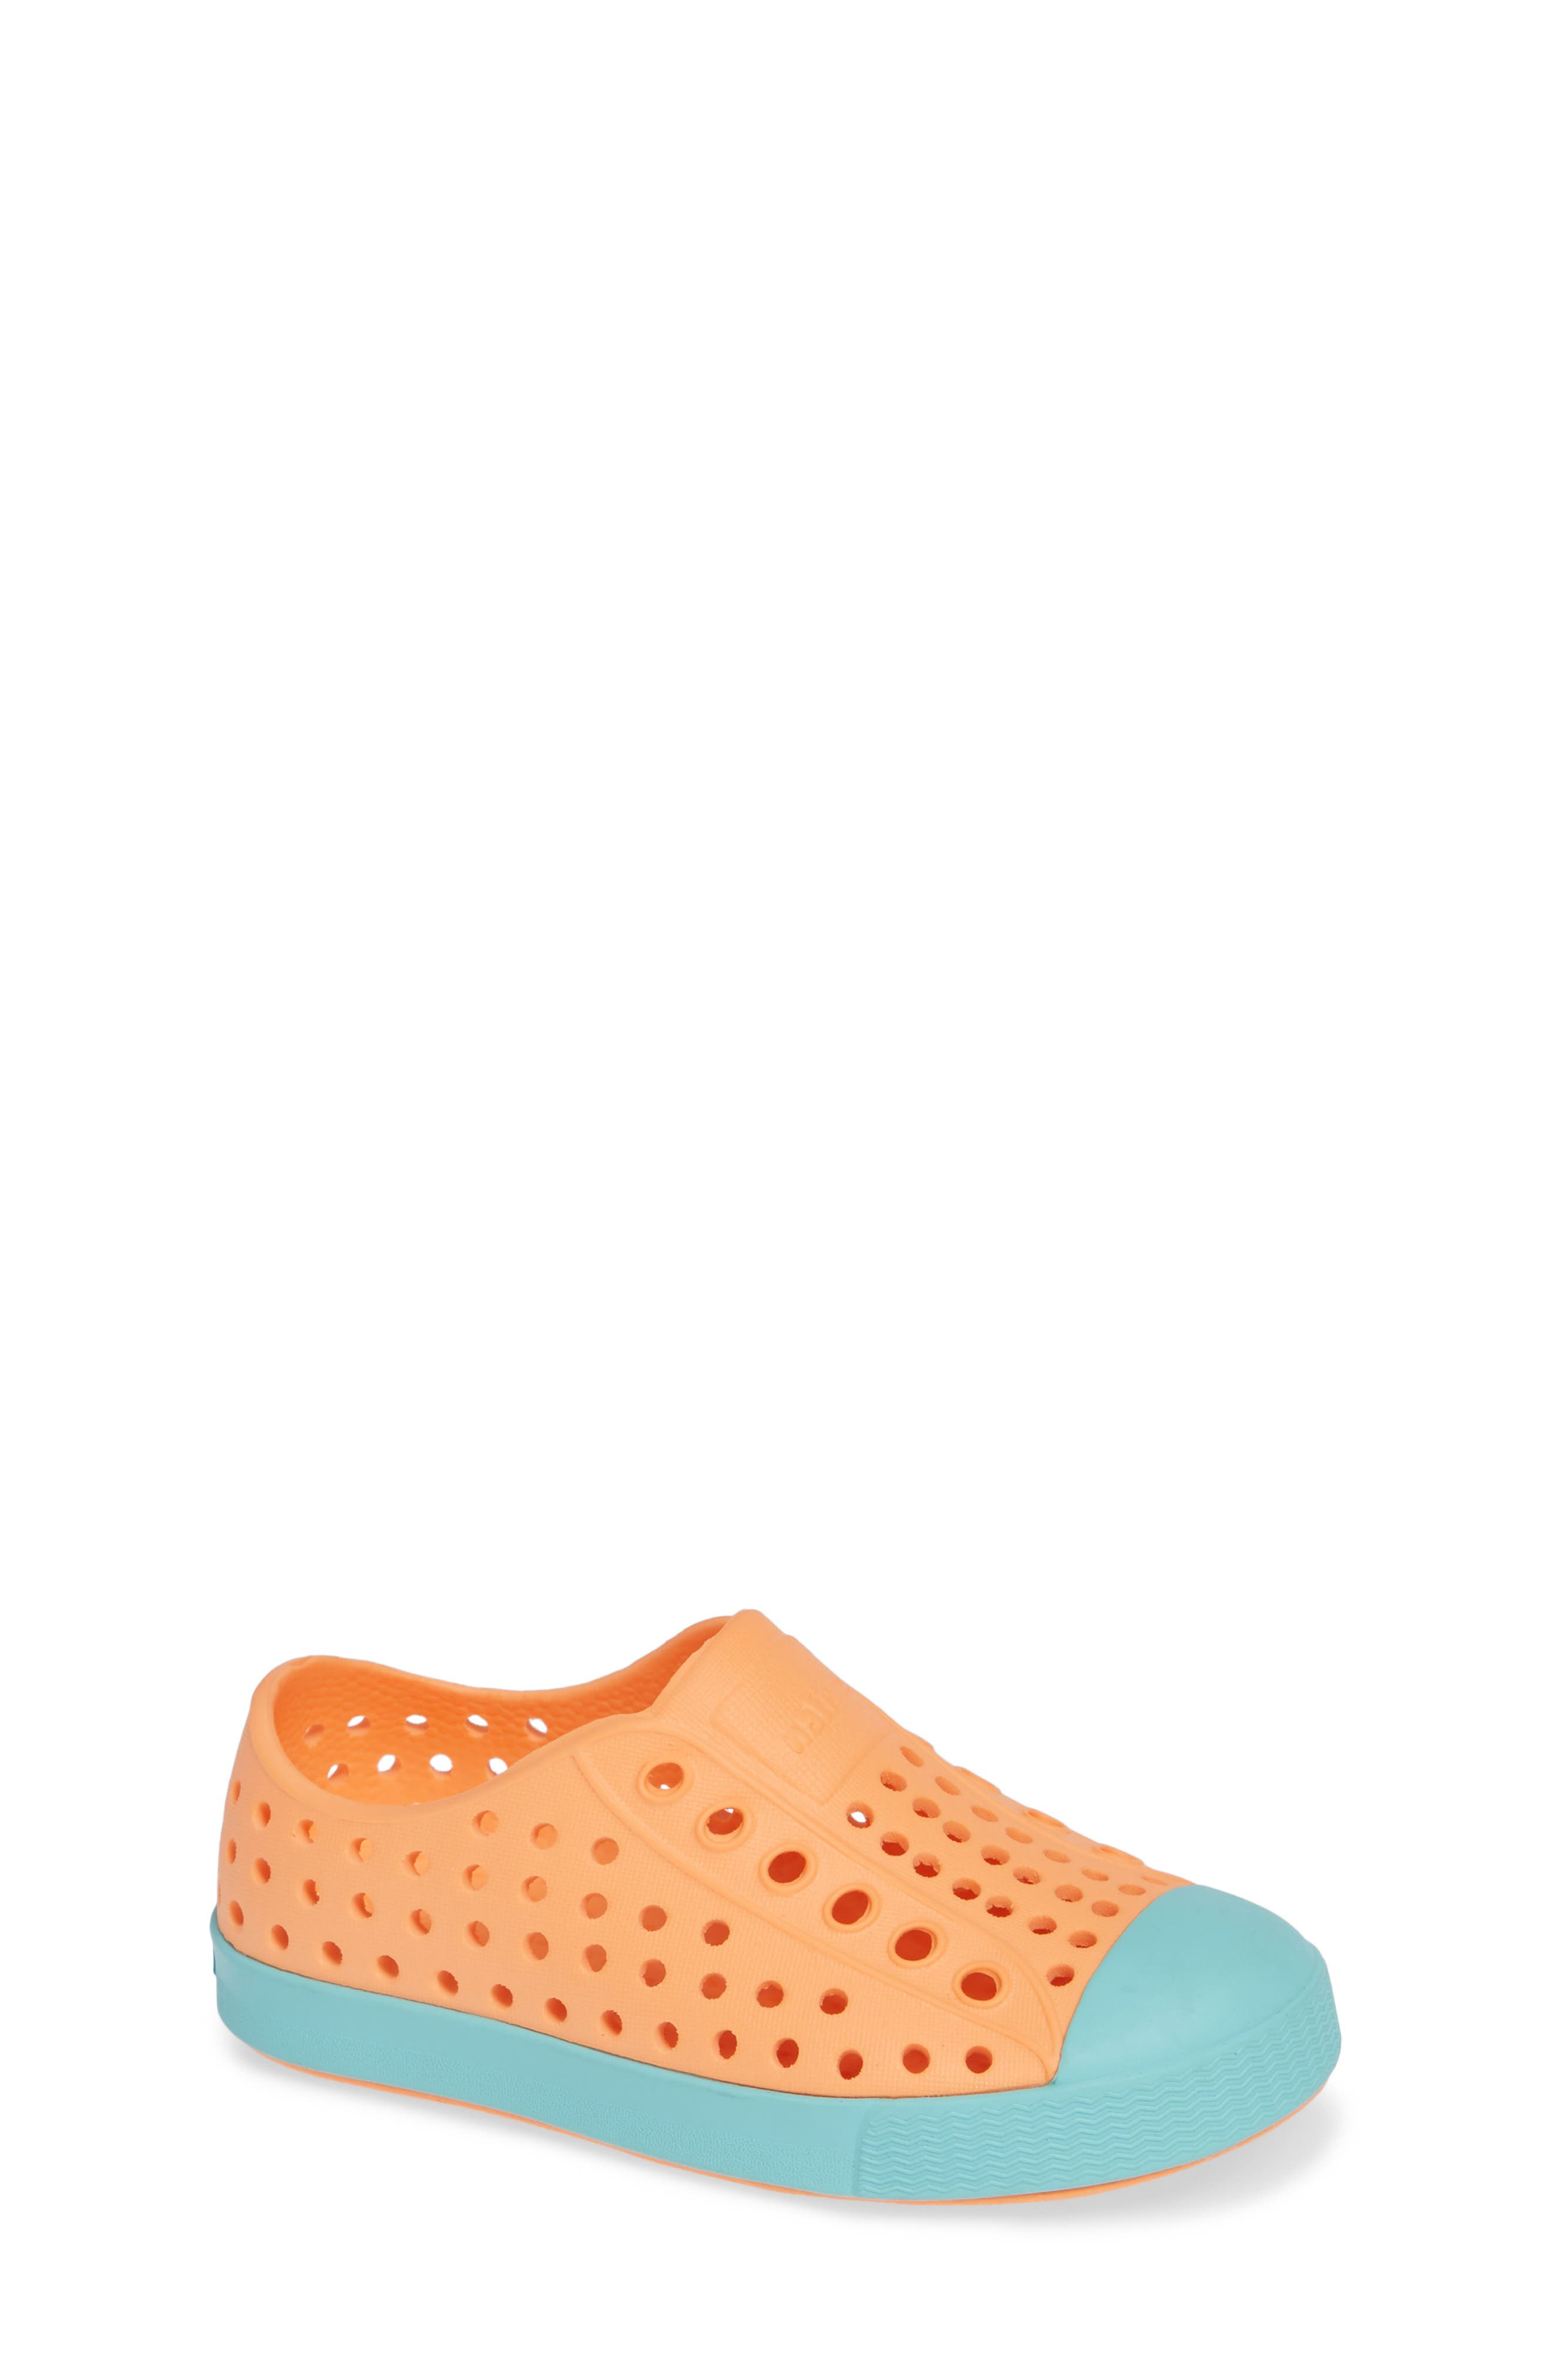 'Jefferson' Water Friendly Slip-On Sneaker,                             Main thumbnail 1, color,                             LASER ORANGE/ SHERBET BLUE